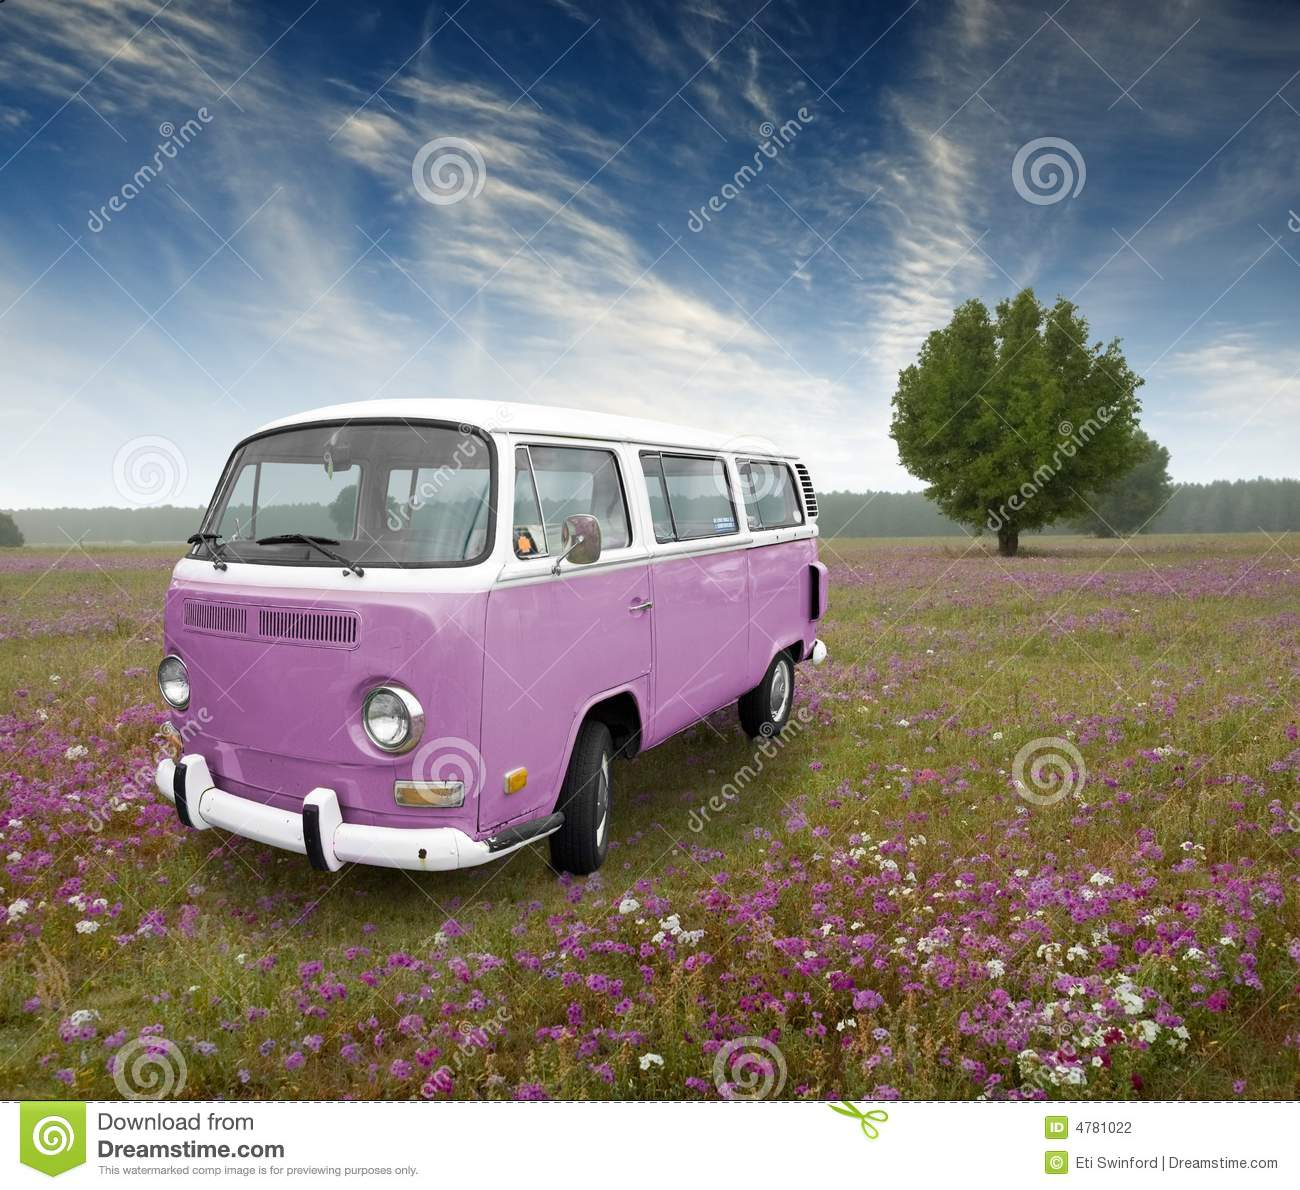 Vw Bug Camper >> Vintage van stock photo. Image of trip, wagon, nostalgia - 4781022